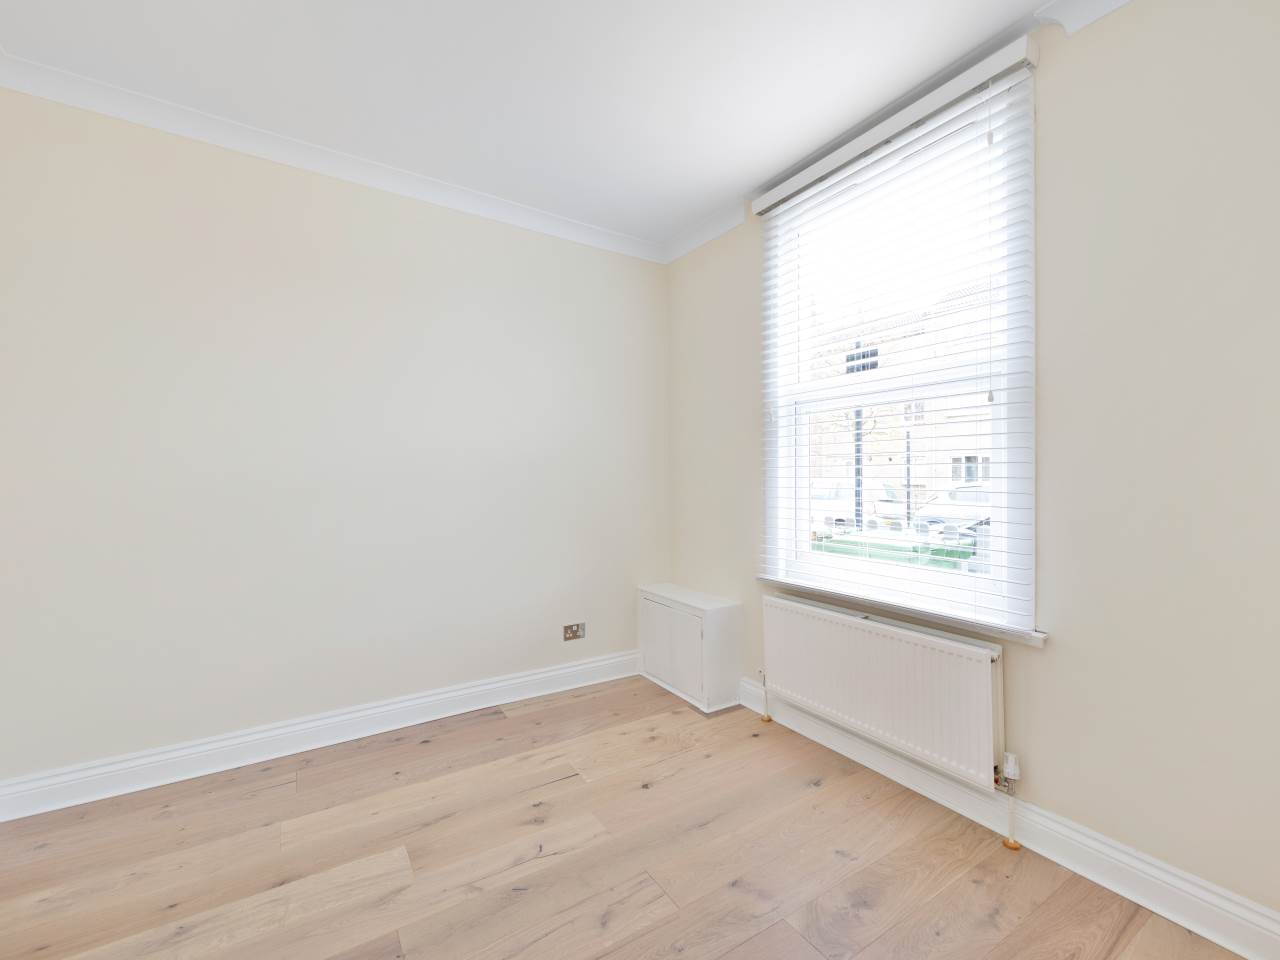 3 bed house for sale in Exning Road , Canning Town  4